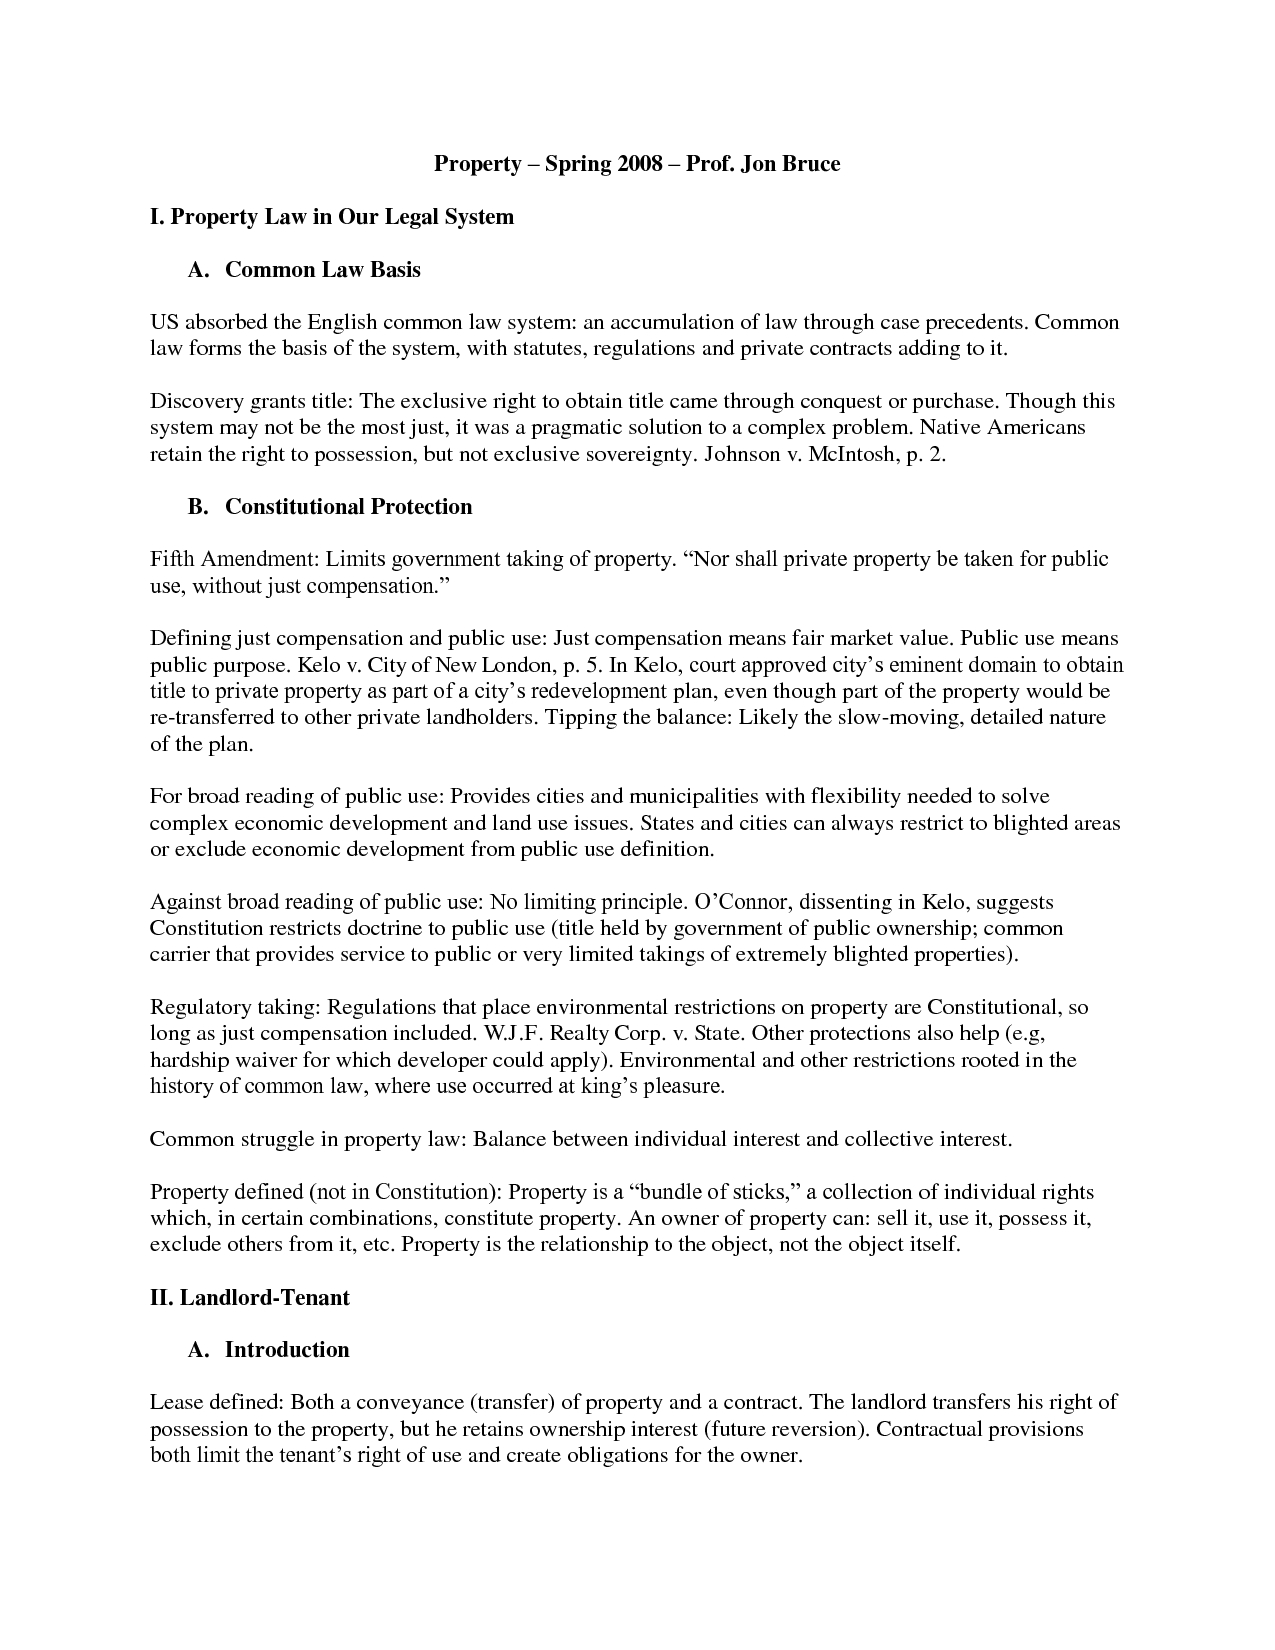 intent to vacate letter template Collection-Sample Intent To Vacate Letter Picture Idease Sample Tenant Rental Property 3-r